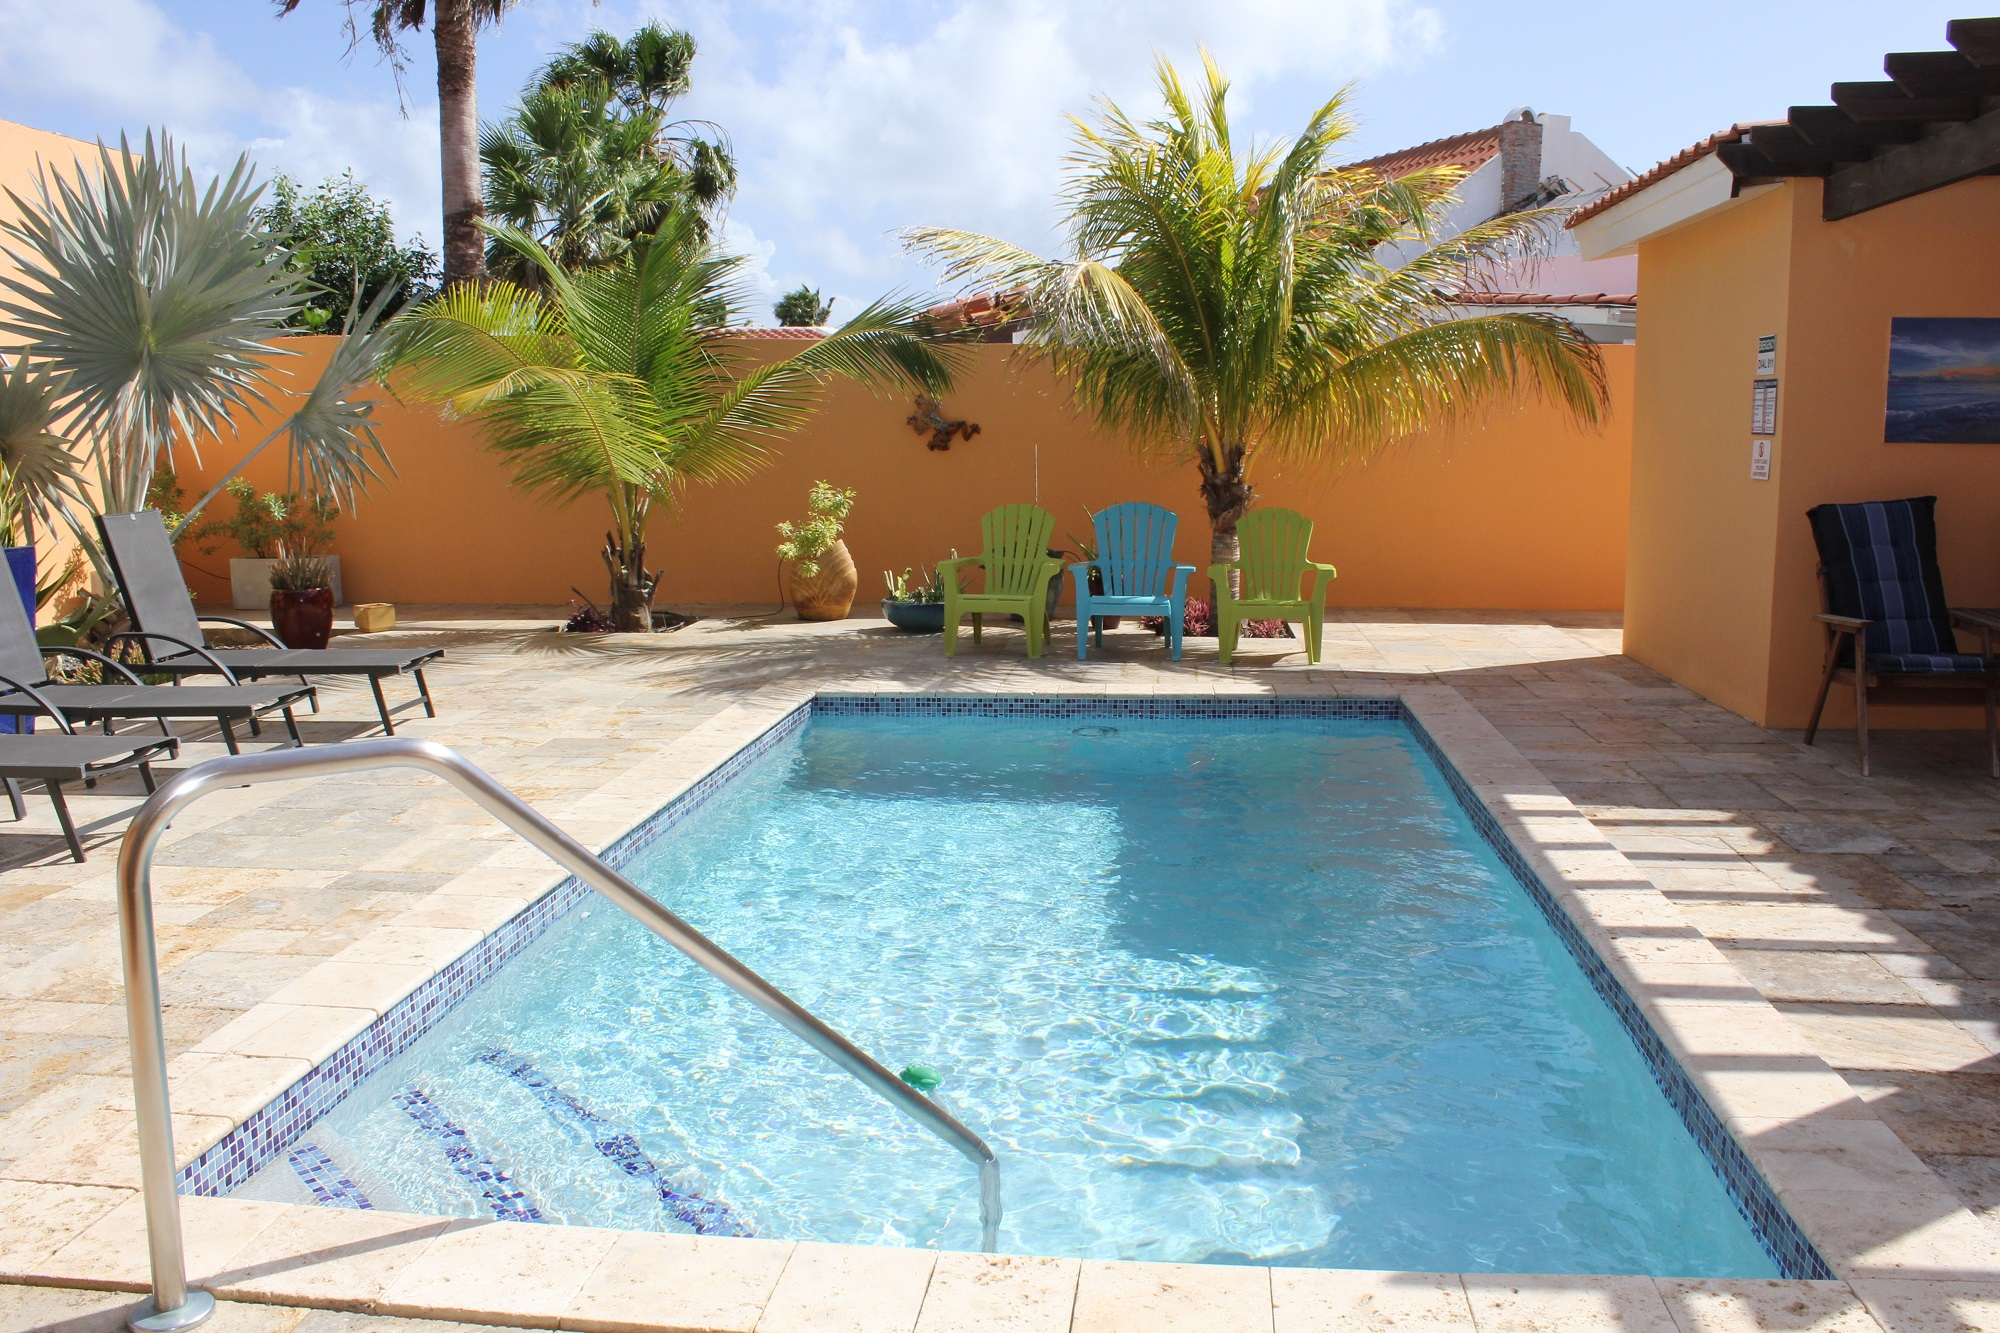 Apartment Aruba Day Dreams  only minutes drive away from the best beaches photo 23183099